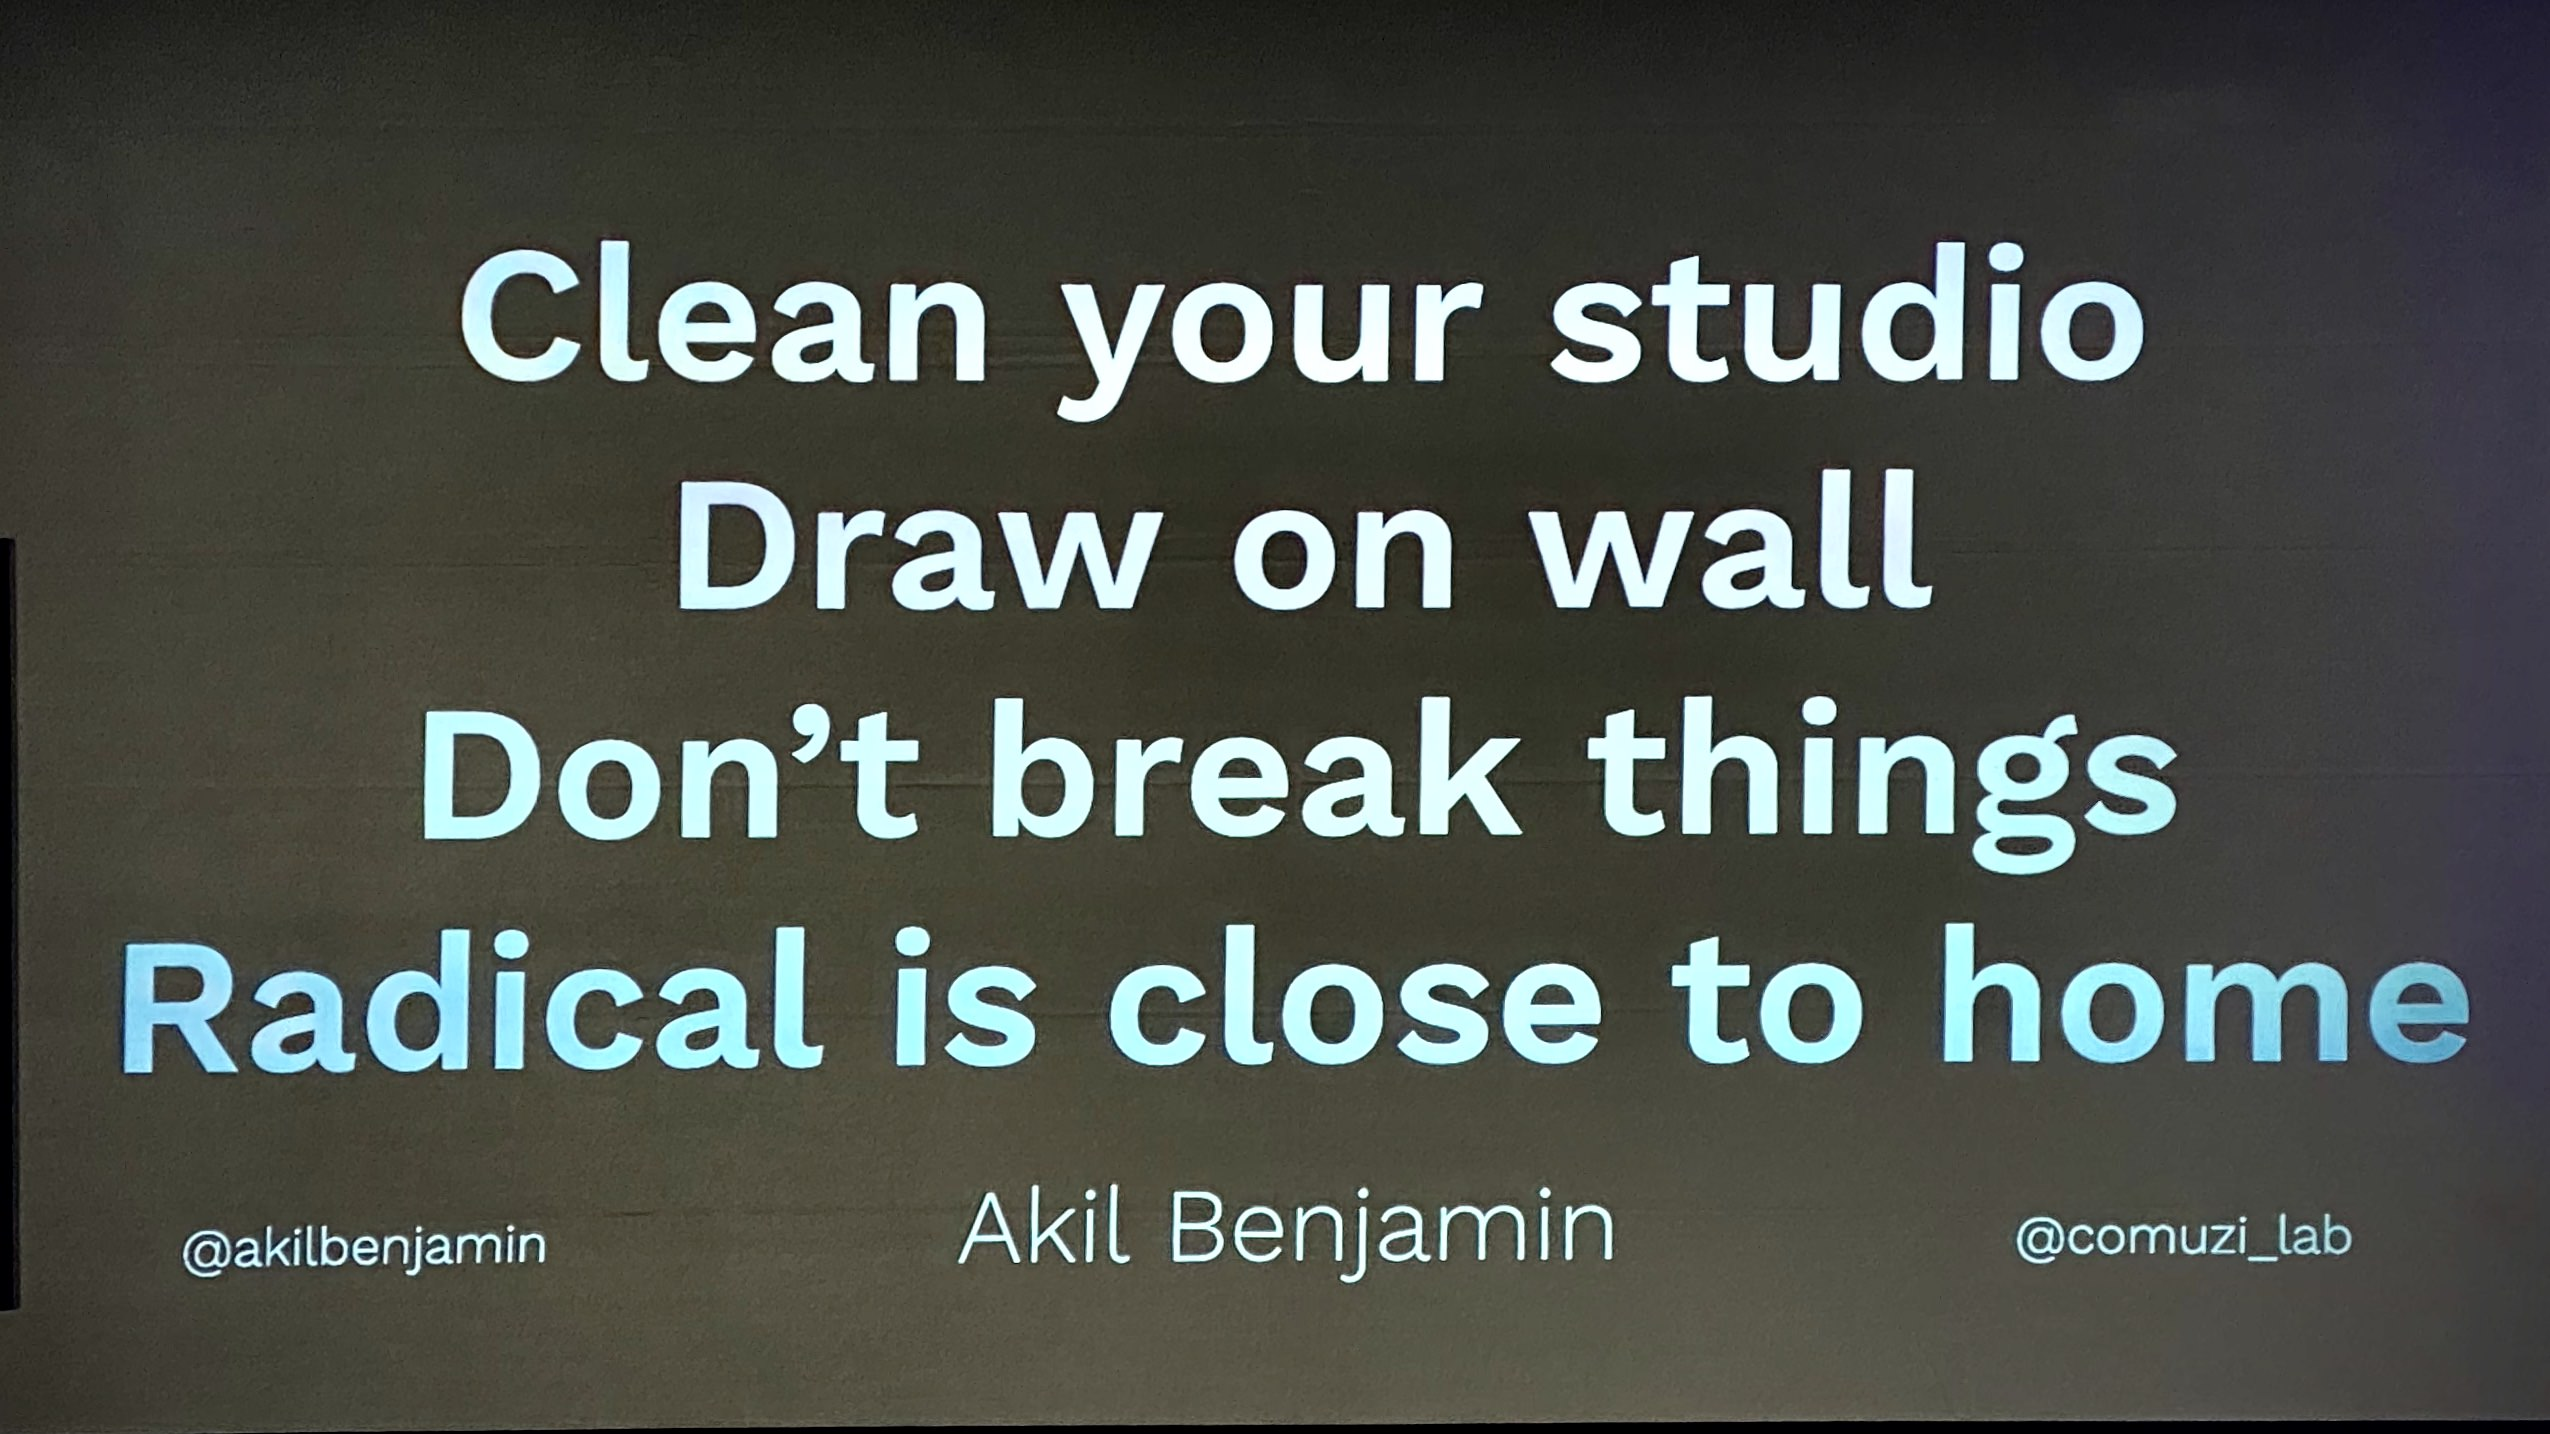 Clean your studio, draw on wall, don't break things, radical is close to home